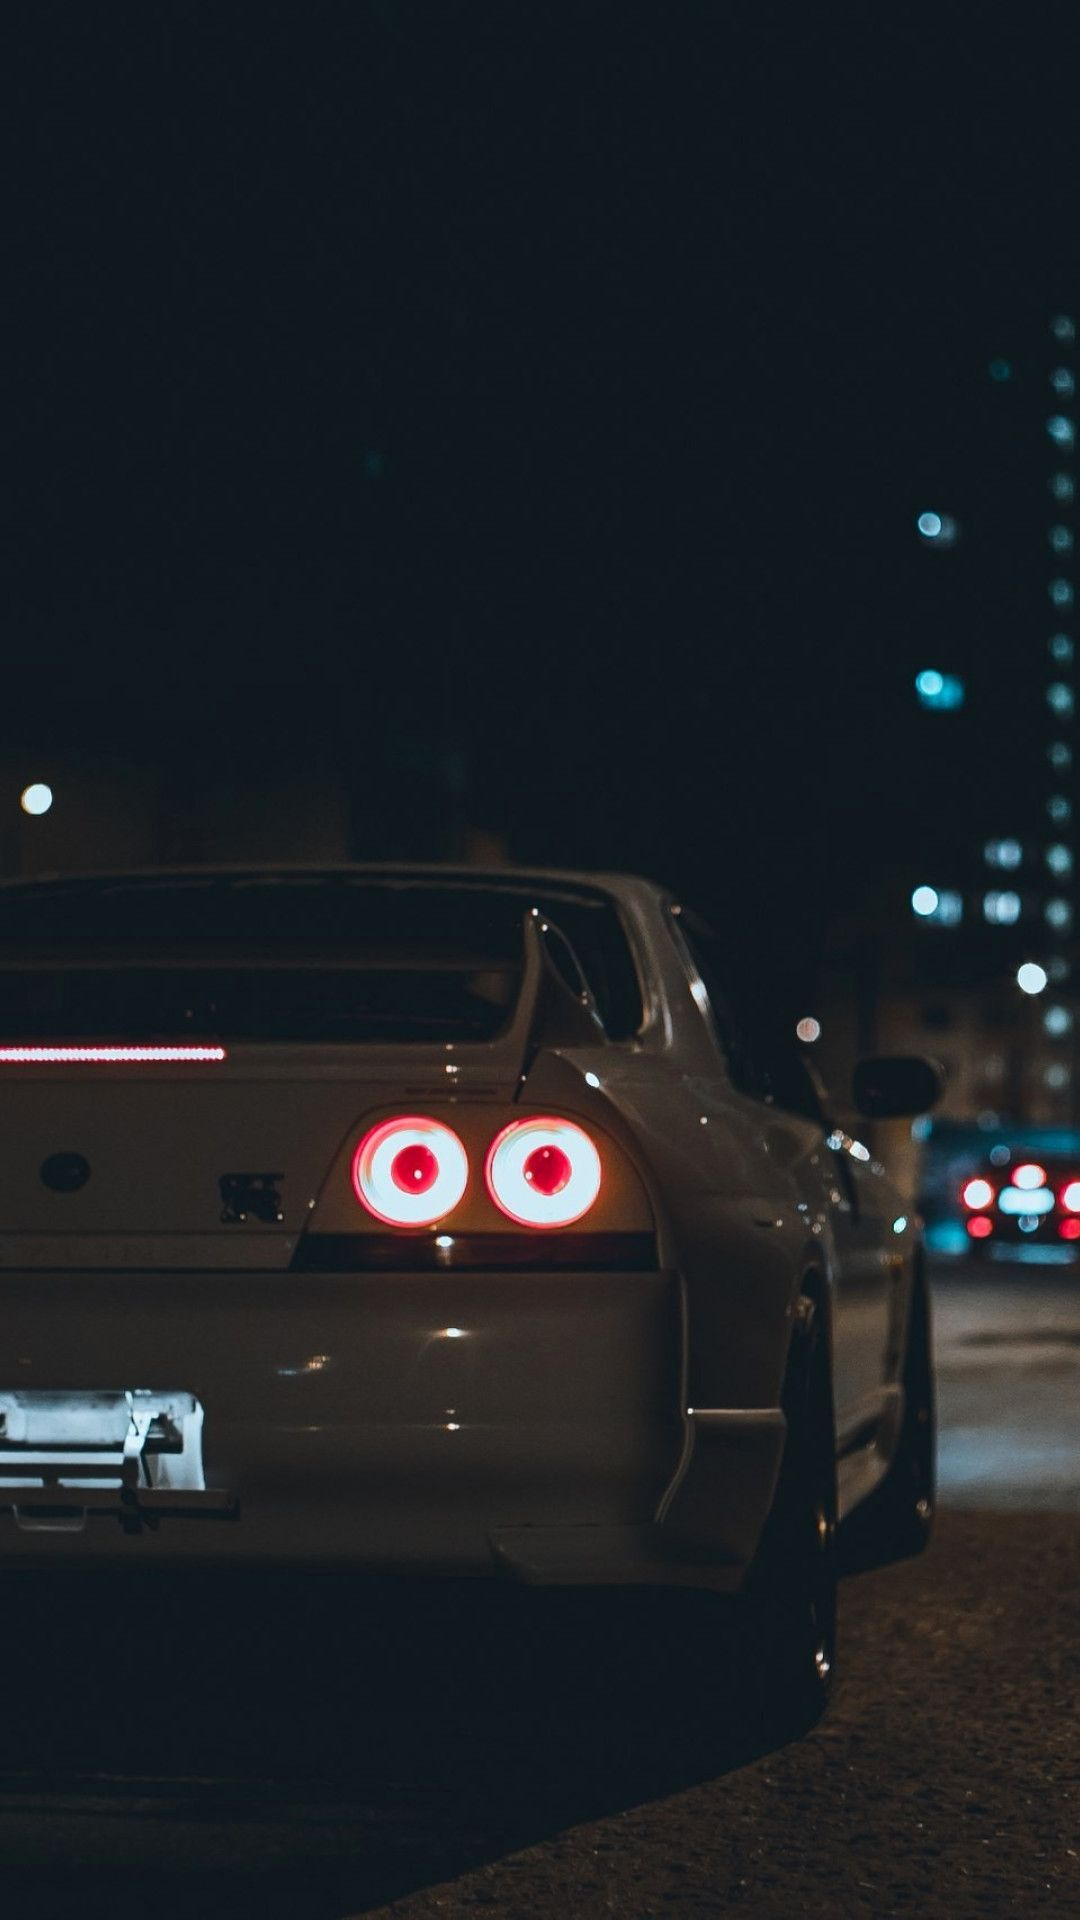 Car Wallpapers Full Hd Hupages Download Iphone Wallpapers Car Iphone Wallpaper Nissan Gtr Skyline Bmw Wallpapers